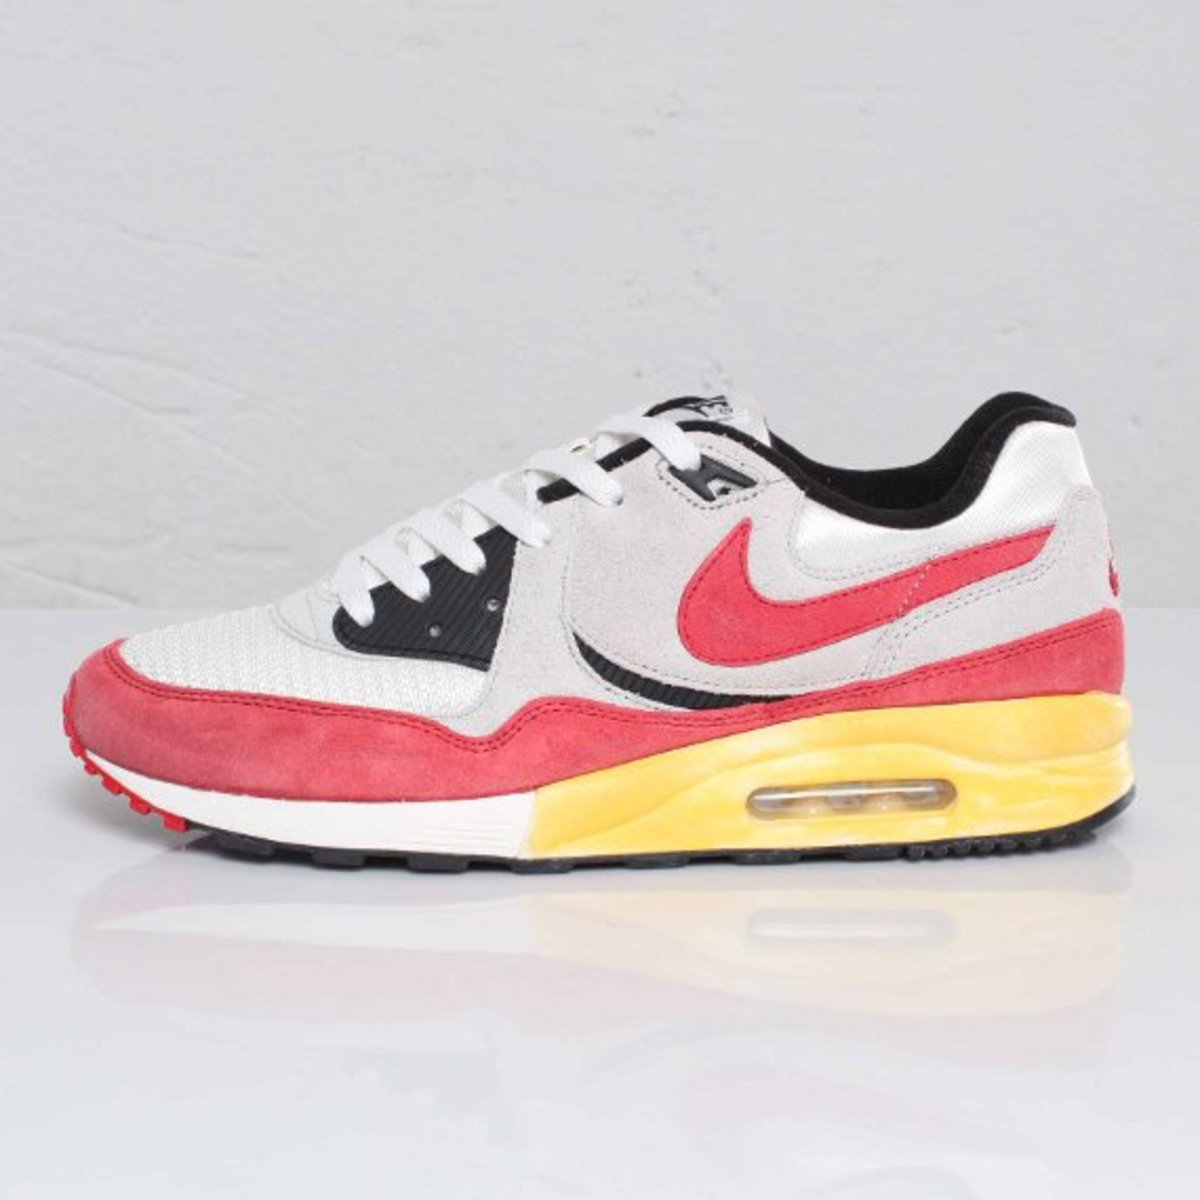 nike air max light vntg qs freshness mag. Black Bedroom Furniture Sets. Home Design Ideas